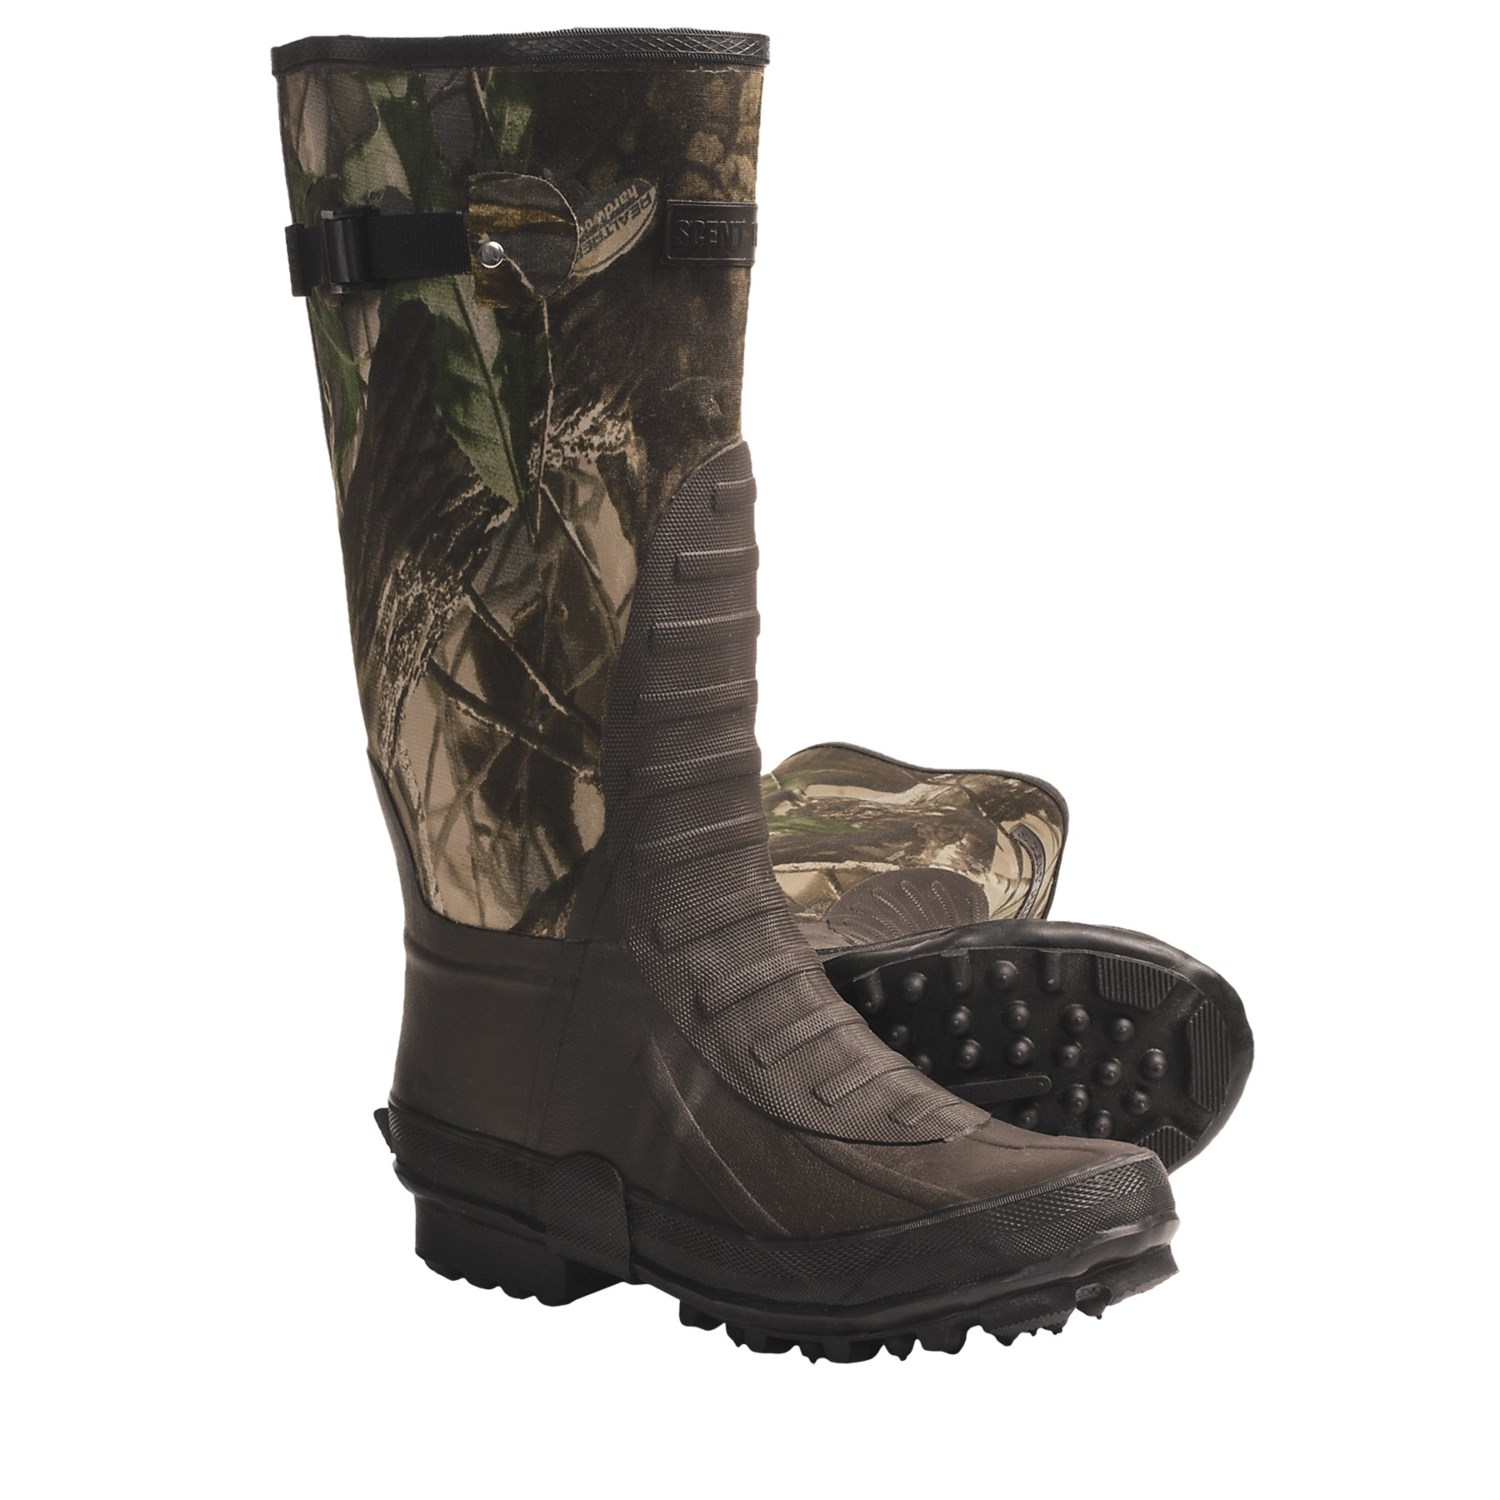 Itasca Swampwalker Rubber Hunting Boots For Men 4629x